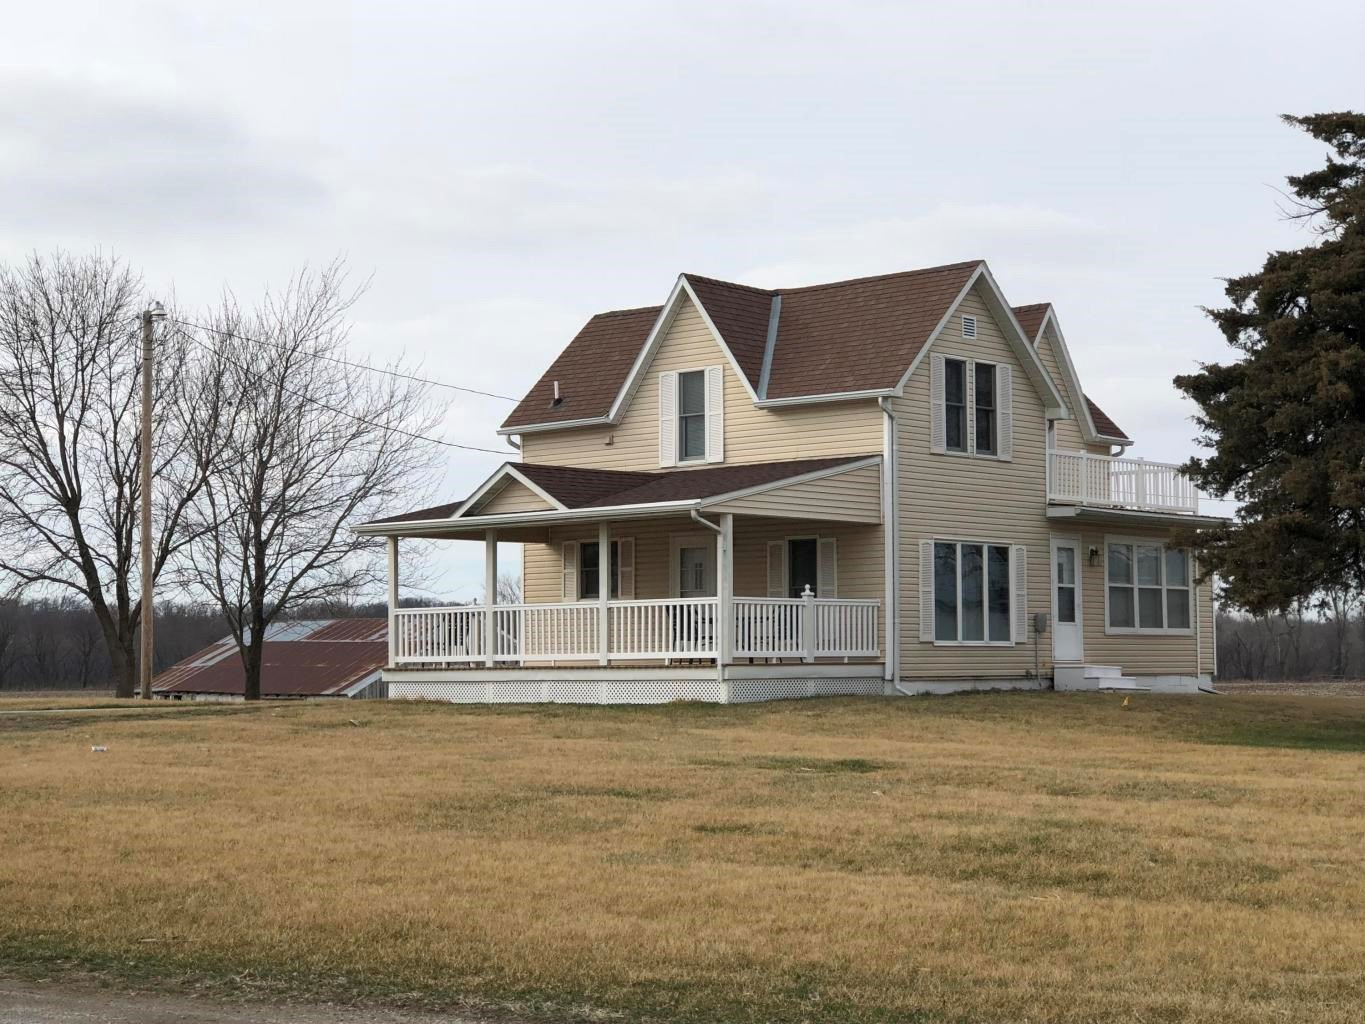 COUNTRY HOME IN NORTHWEST MISSOURI, HIGHWAY FRONTAGE